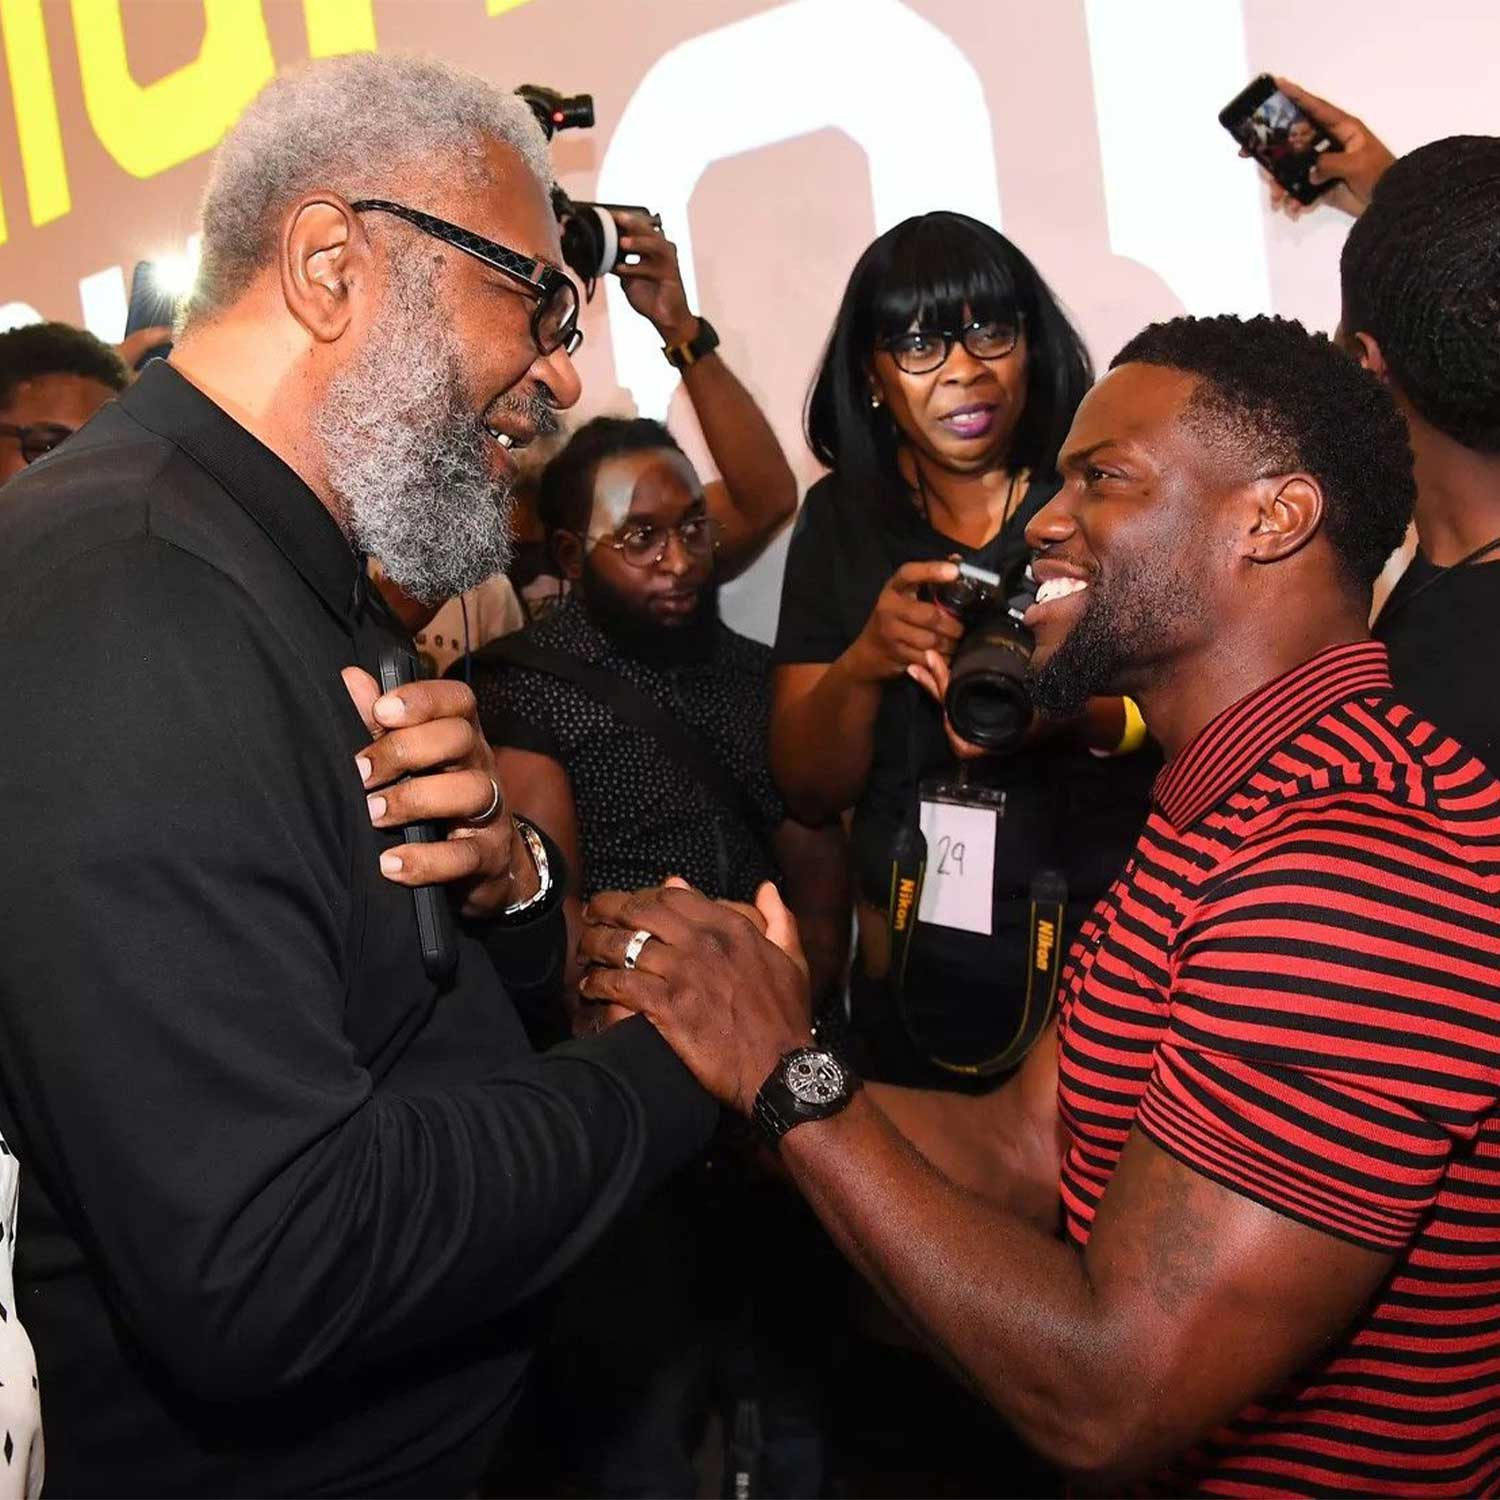 "ATLANTA, GA - SEPTEMBER 11: Kevin Hart (R) greeted by Nathaniel Norment (L) during Morehouse College REAL TALK with ""Night School"" actor Kevin Hart & producer Will Packer at Morehouse College on September 11, 2018 in Atlanta, Georgia. The watch on Hart's wrist is the Royal Oak Perpetual Calendar Ceramic Ref. 26579CE (Photo by Paras Griffin/Getty Images for Universal Pictures)"